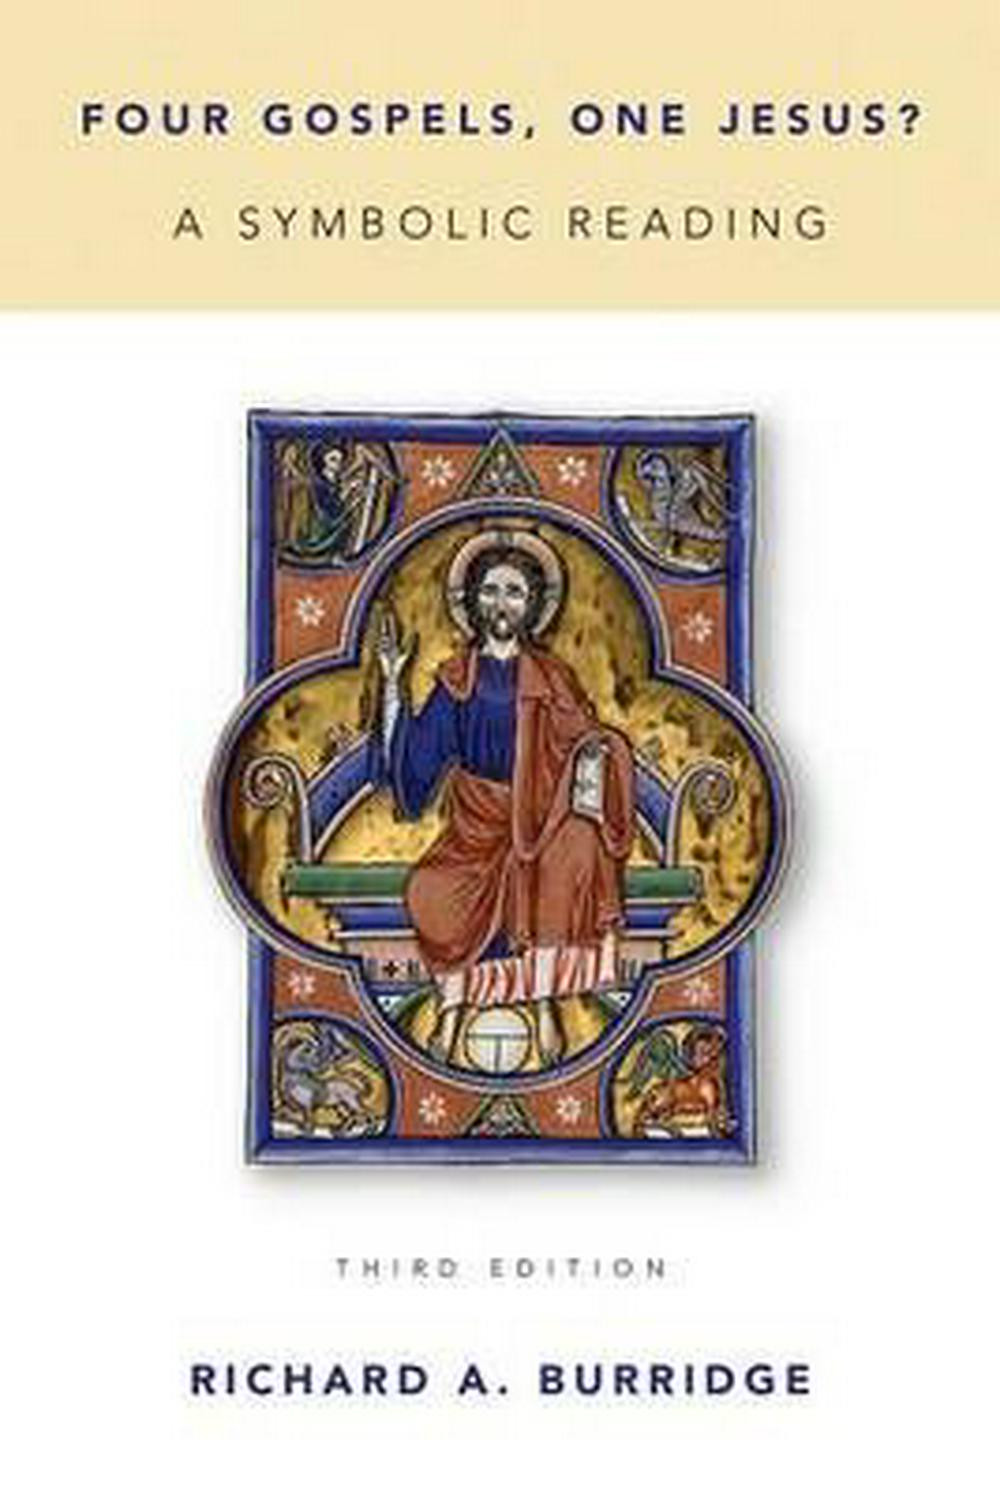 Four Gospels, One Jesus?: A Symbolic Reading by Richard A. Burridge, ISBN: 9780802871015